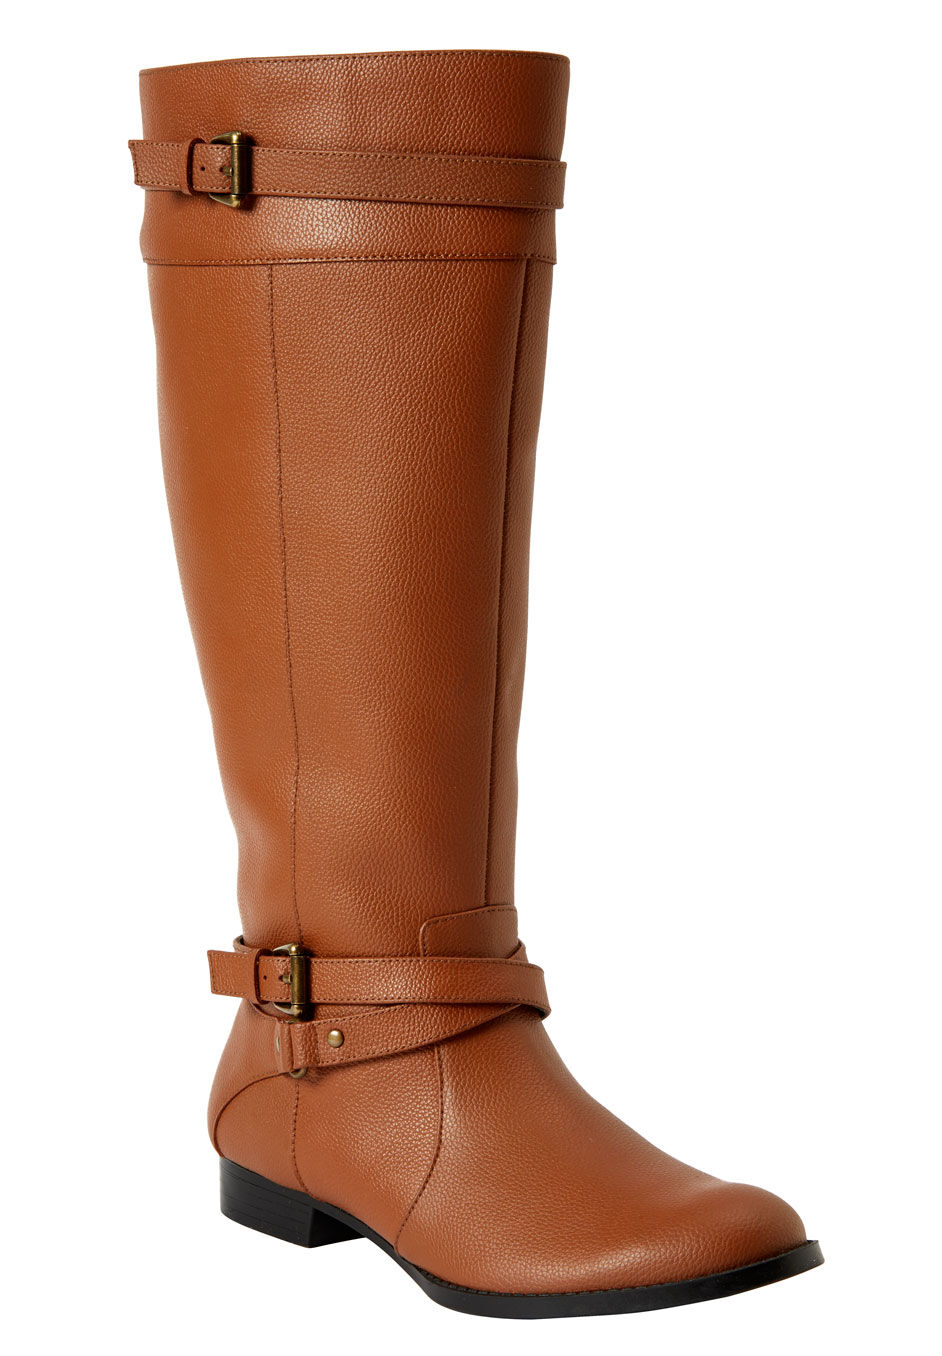 The Janis Wide Calf Leather Boot